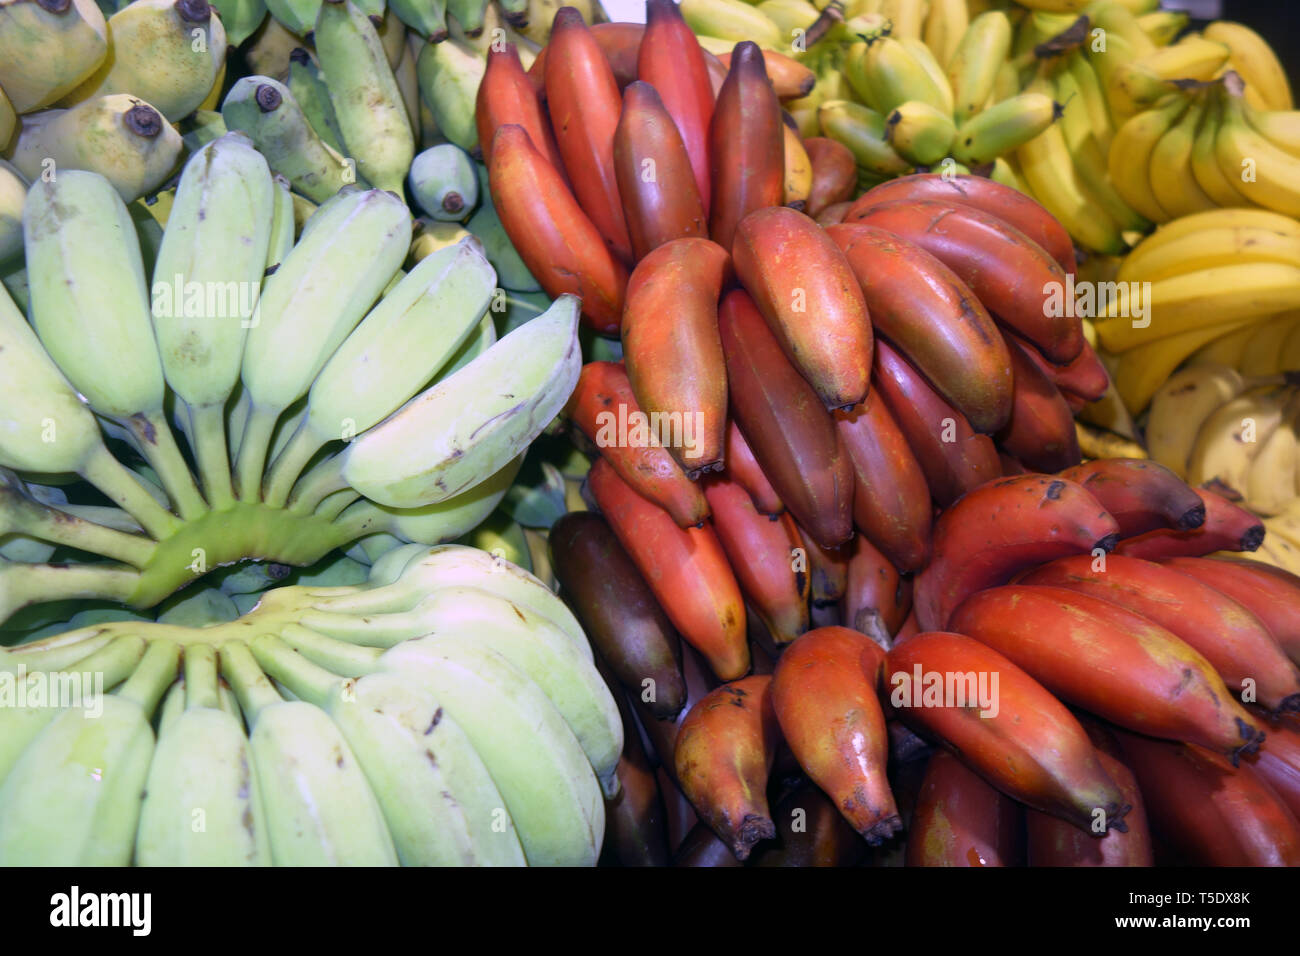 Several different kinds of banana for sale at Rusty's Markets, Cairns, Queensland, Australia - Stock Image